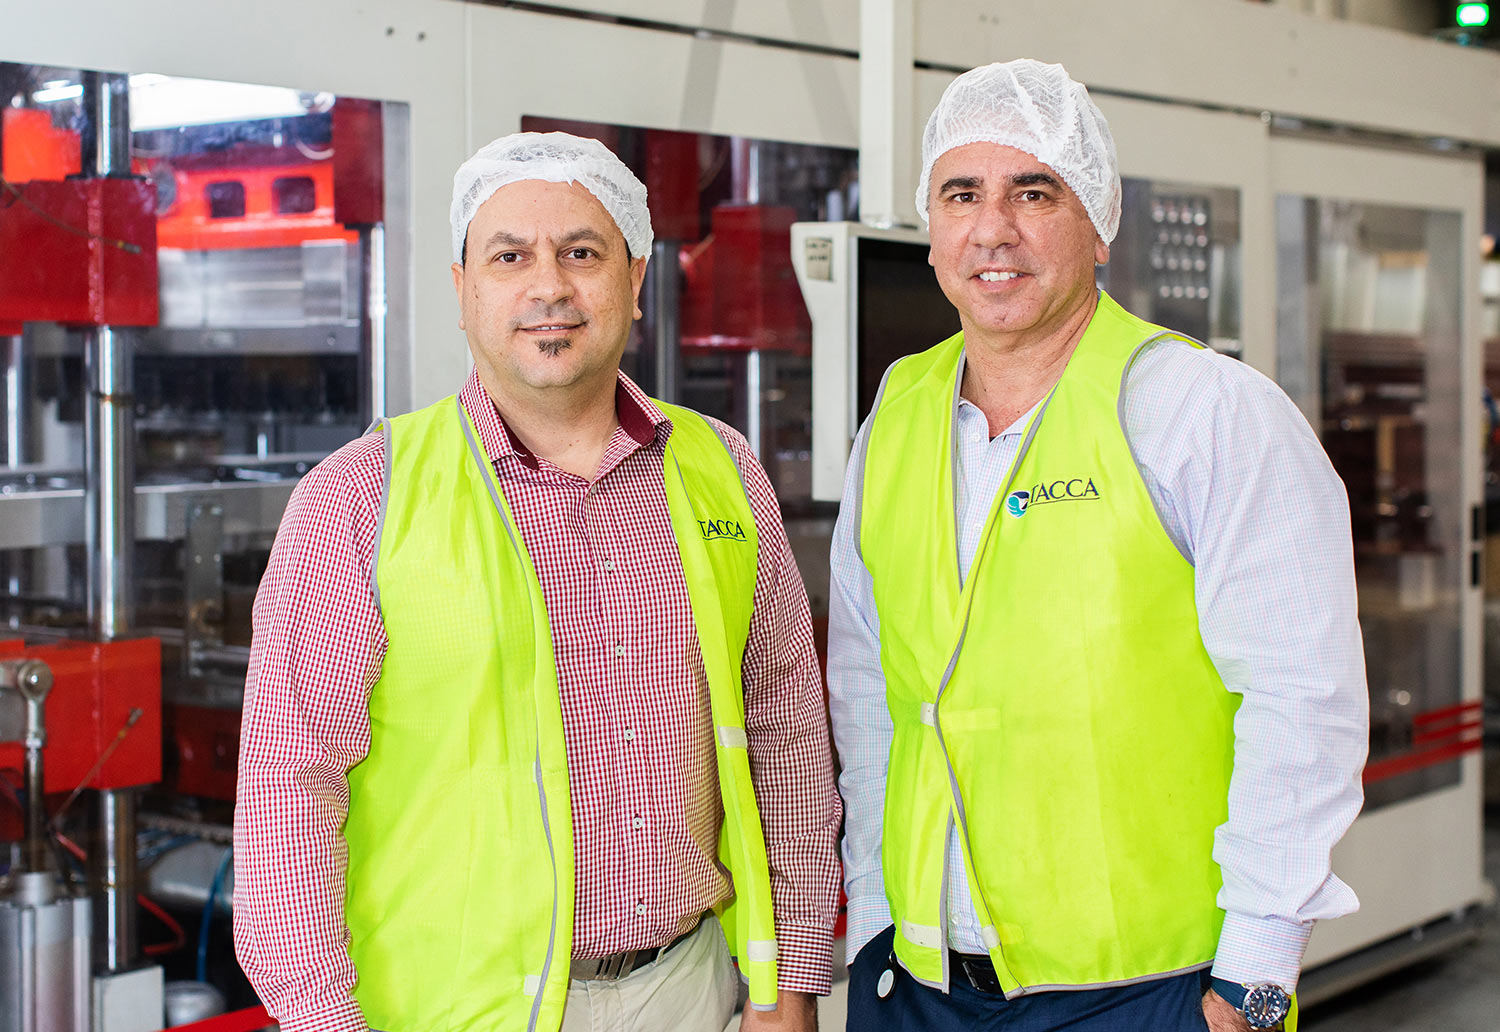 Tacca Industries Managing Director - Domenic Tacca and Chief Executive Officer - Clem Tacca